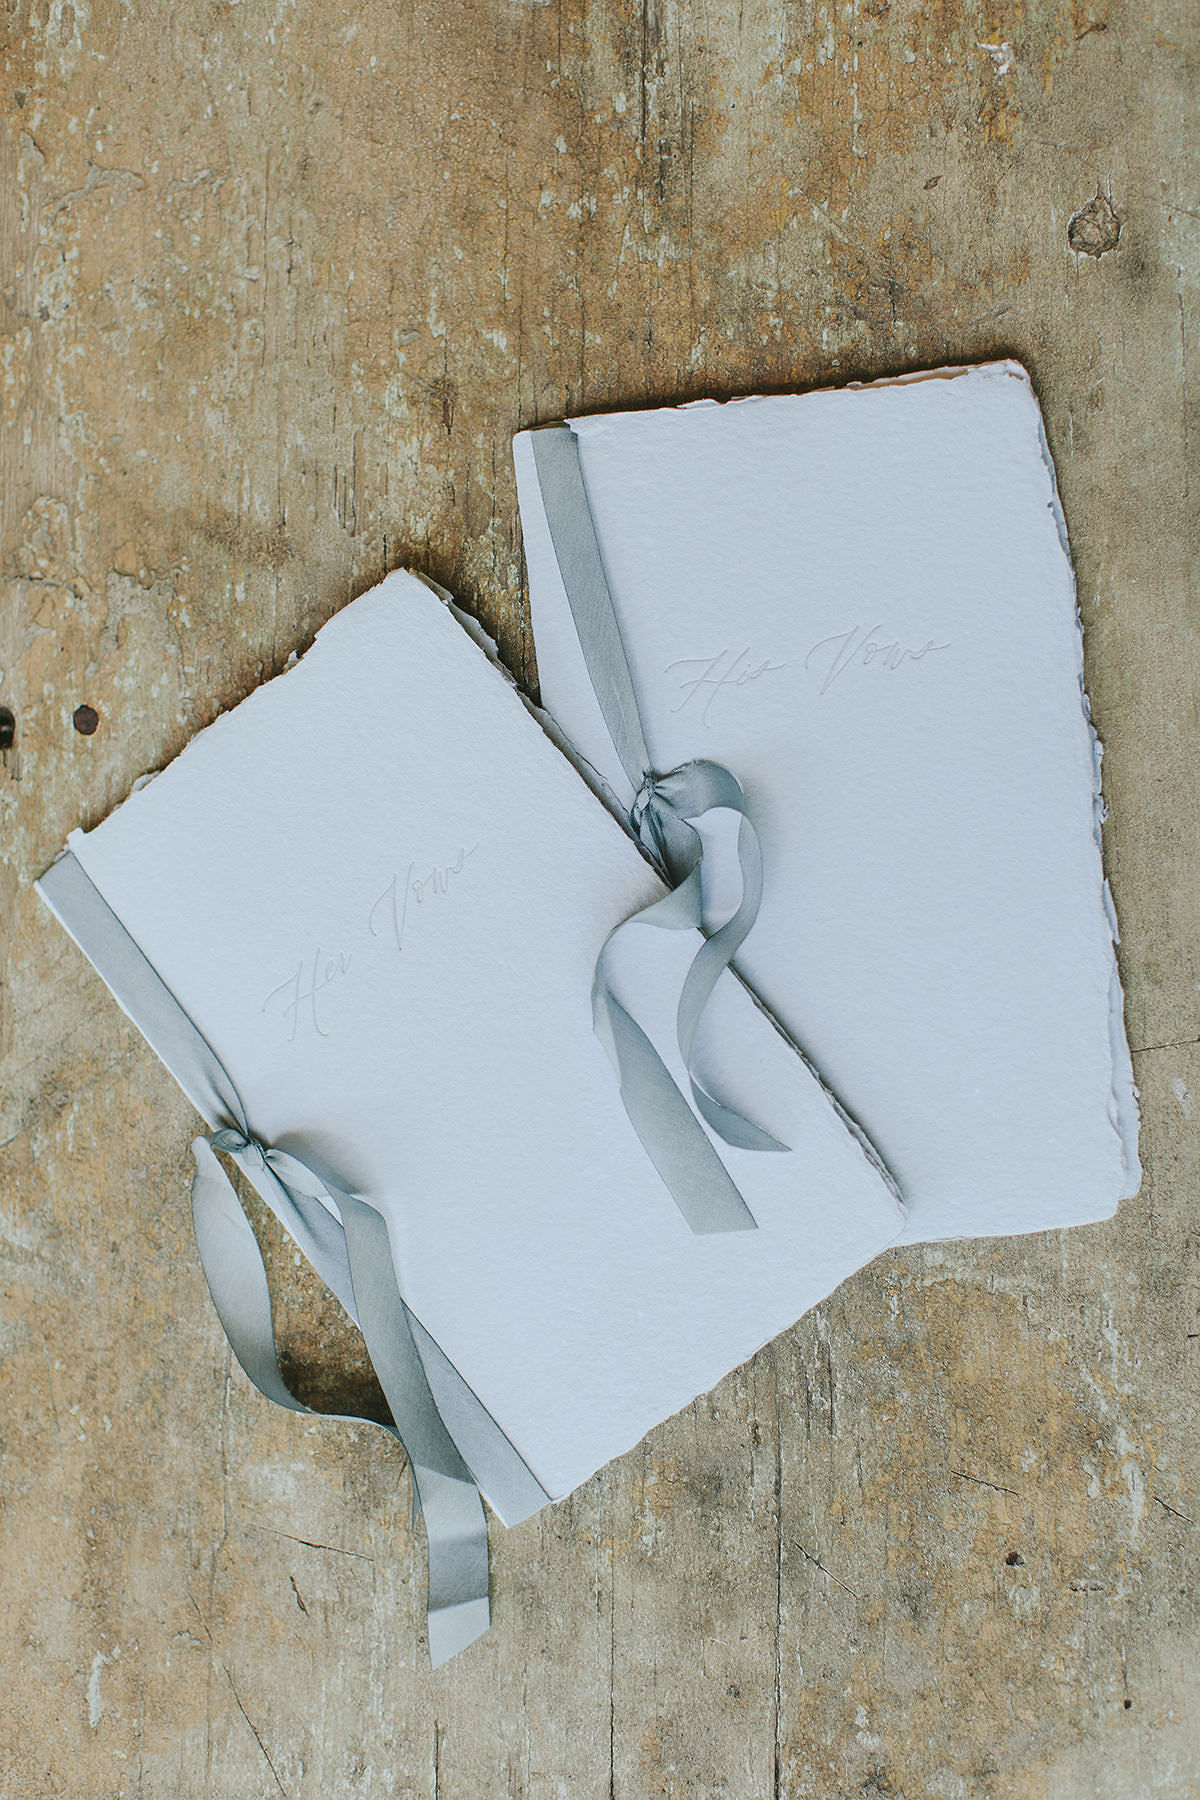 sarah daniel wedding vow books